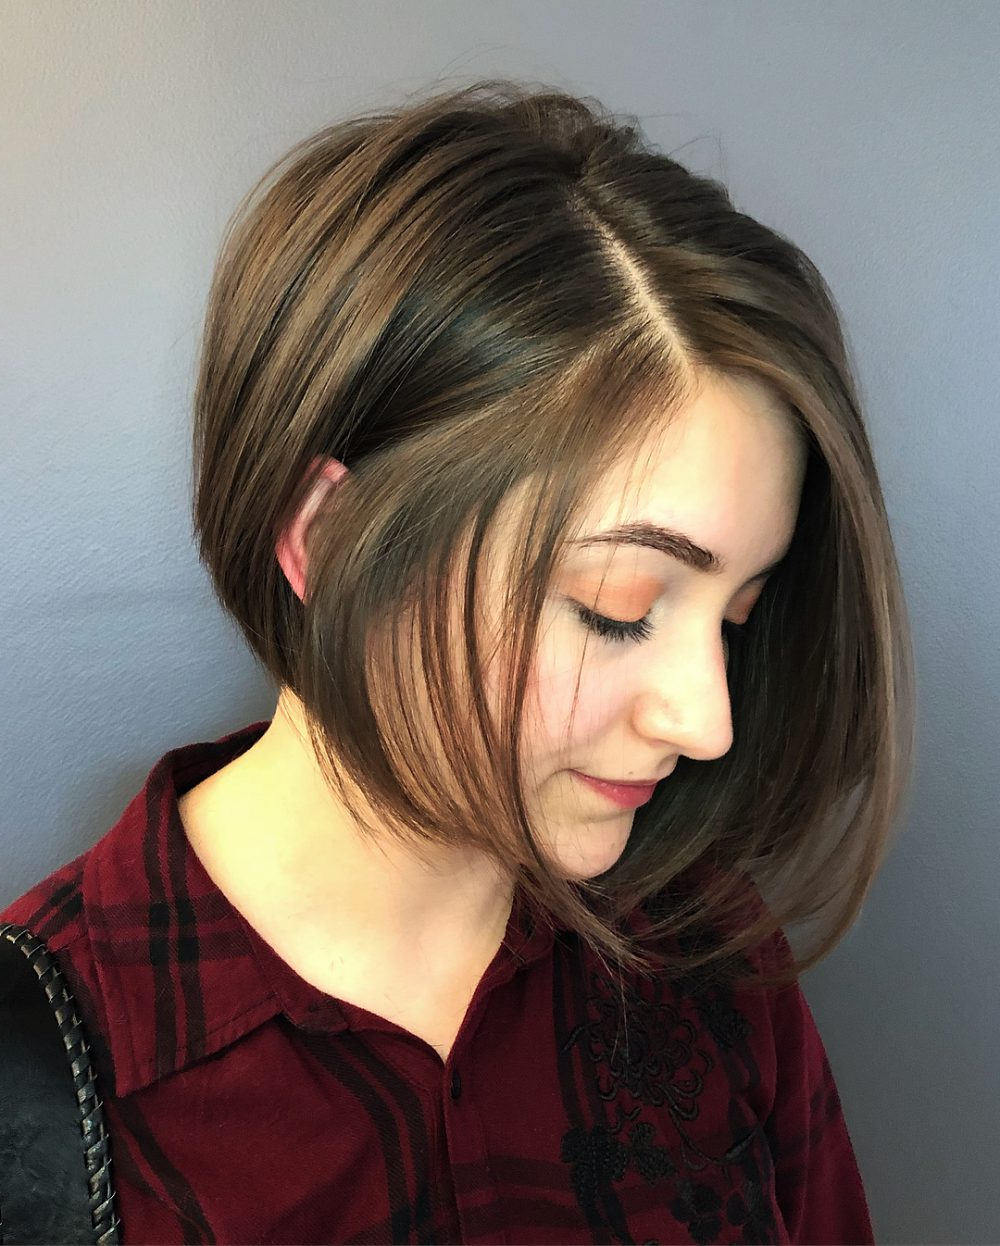 Newest Low Maintenance Medium Haircuts For Round Faces Regarding 33 Most Flattering Short Hairstyles For Round Faces (View 16 of 20)